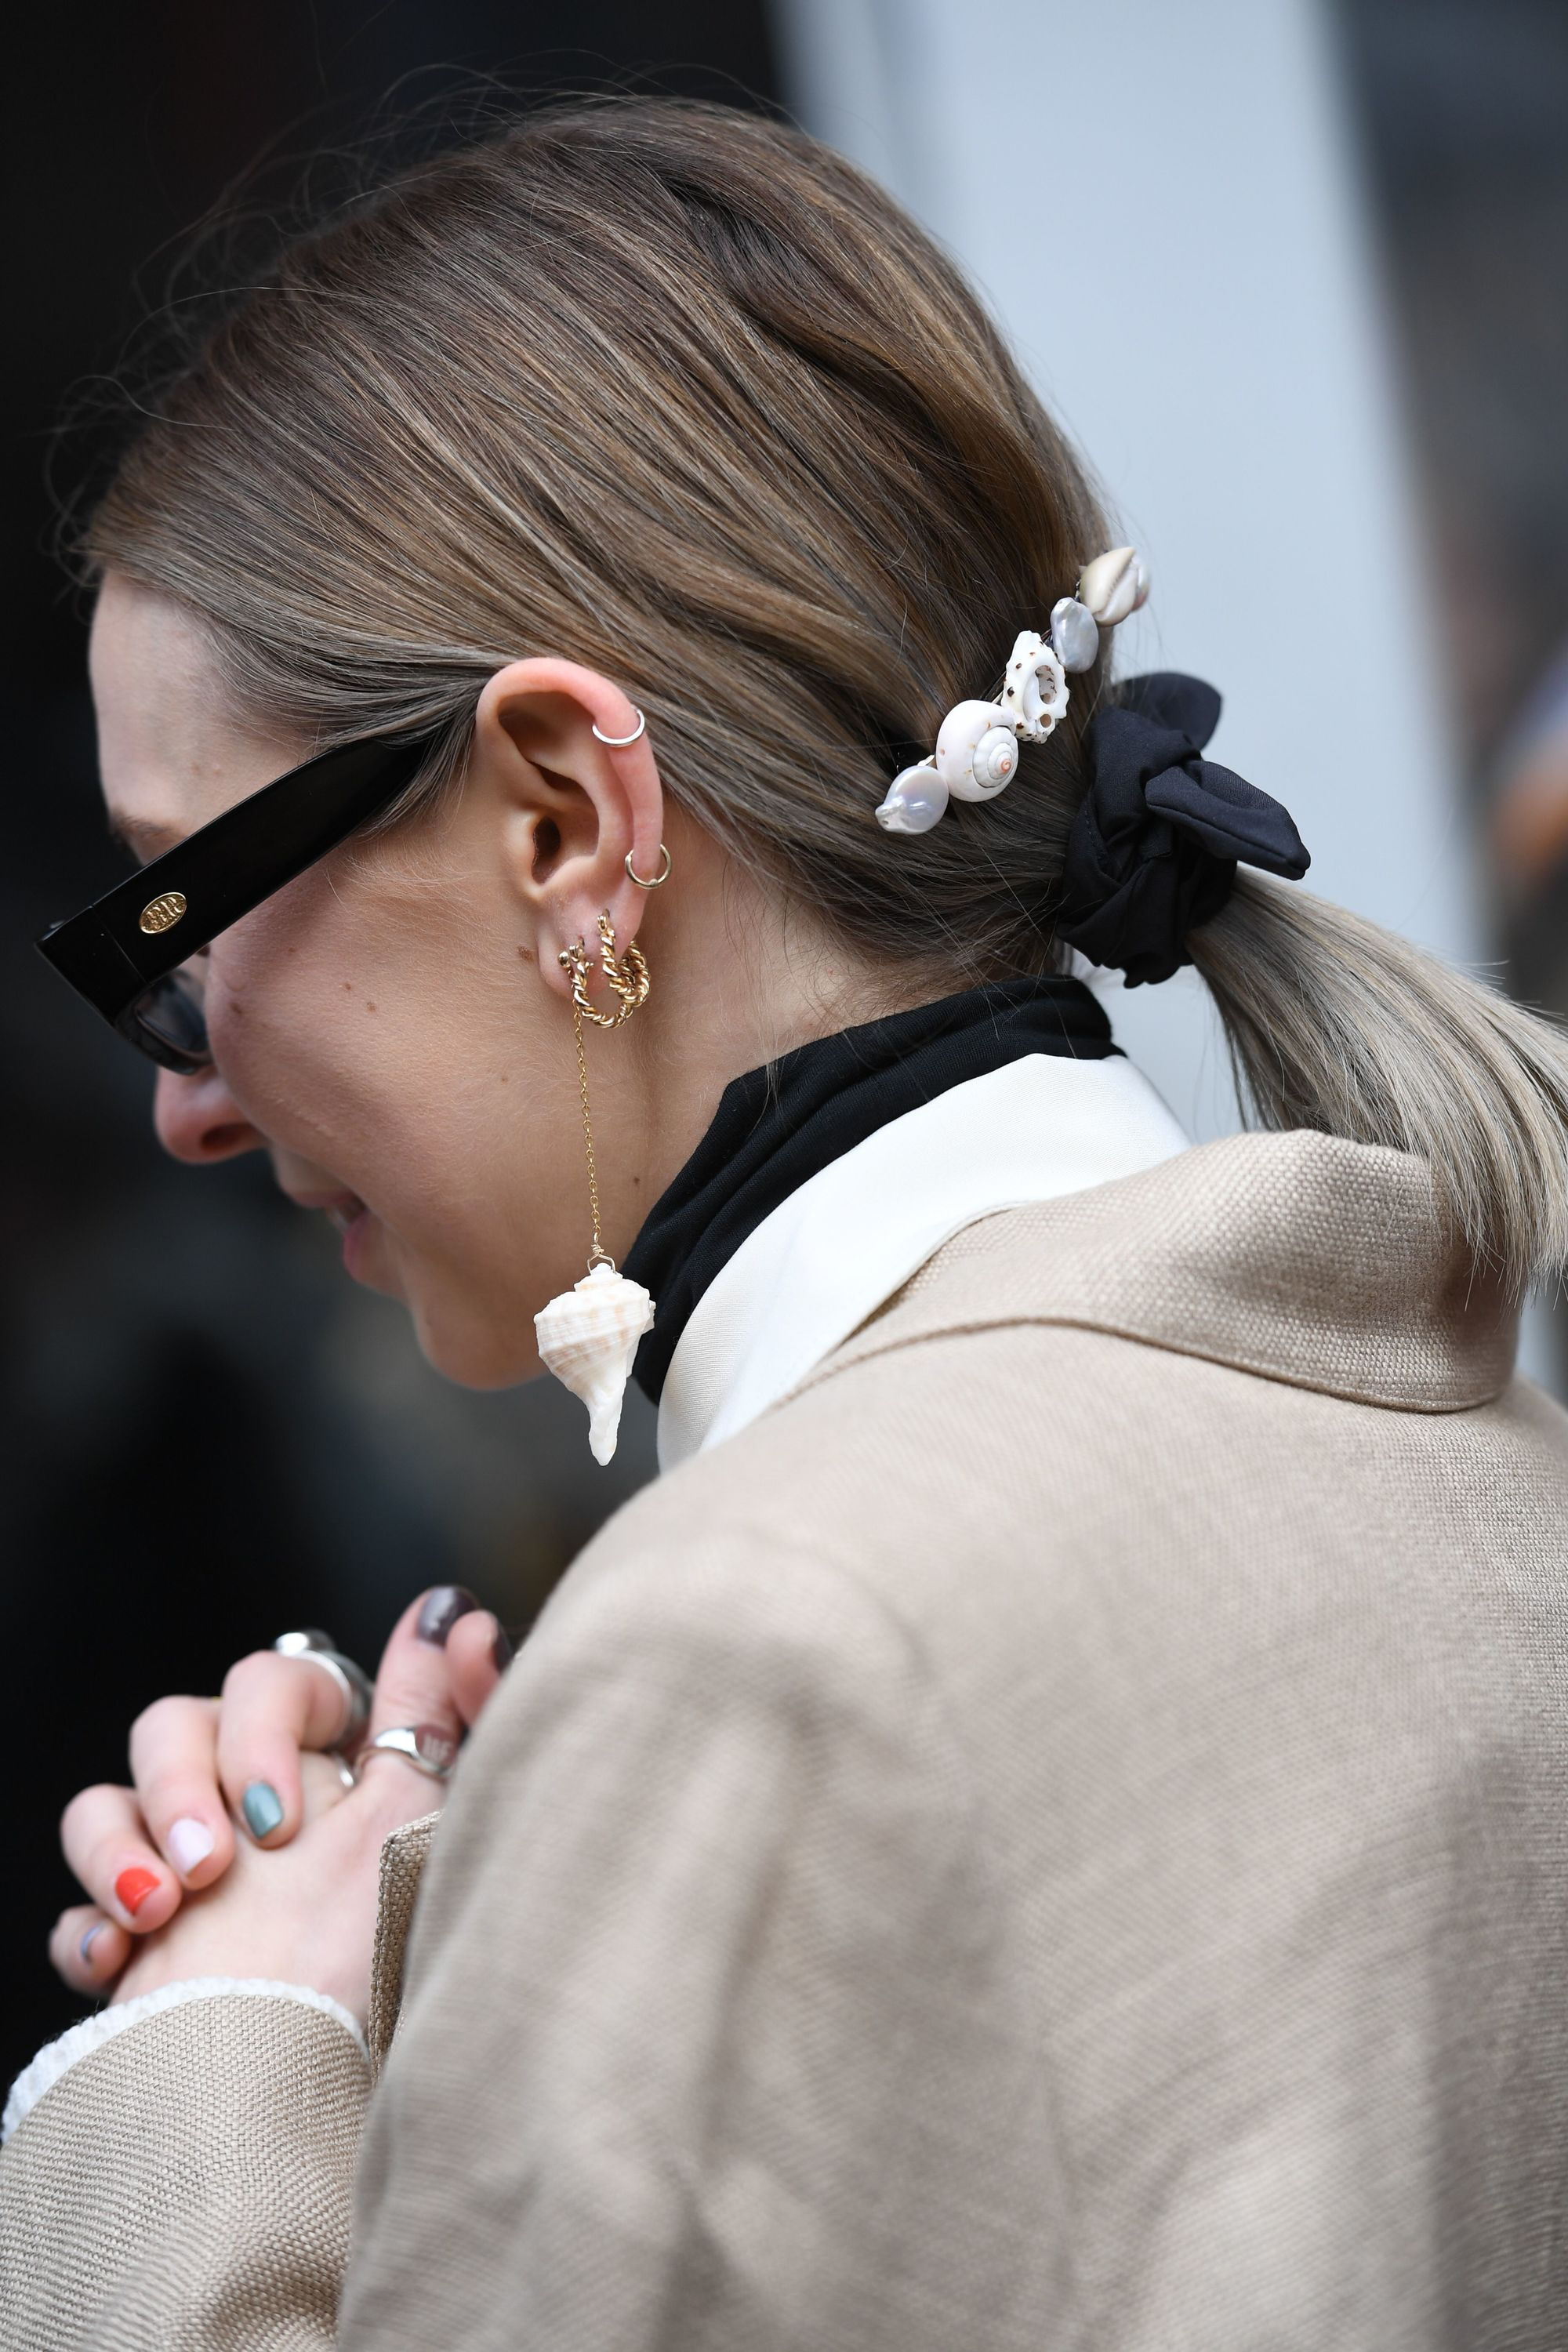 Side shot of woman with short dark to ash blonde hair styled into , wearing a beige coat